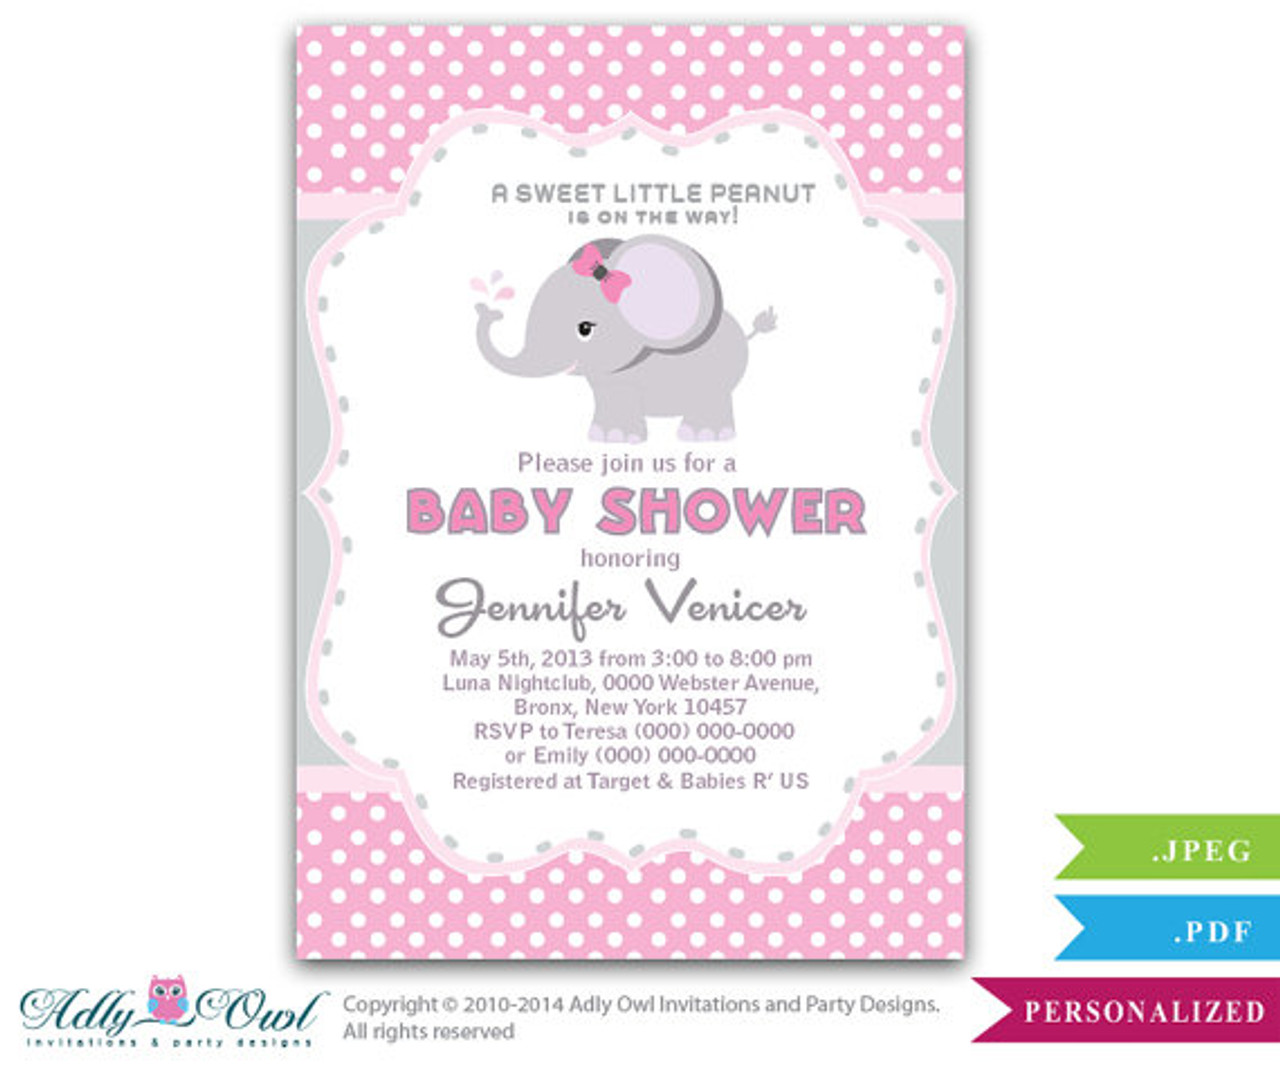 5x7 Pink Elephant with Gray Polka Dots Baby Shower Invitation  New Baby Girl Baby Shower Invite  DIY Printable Baby Shower Invite